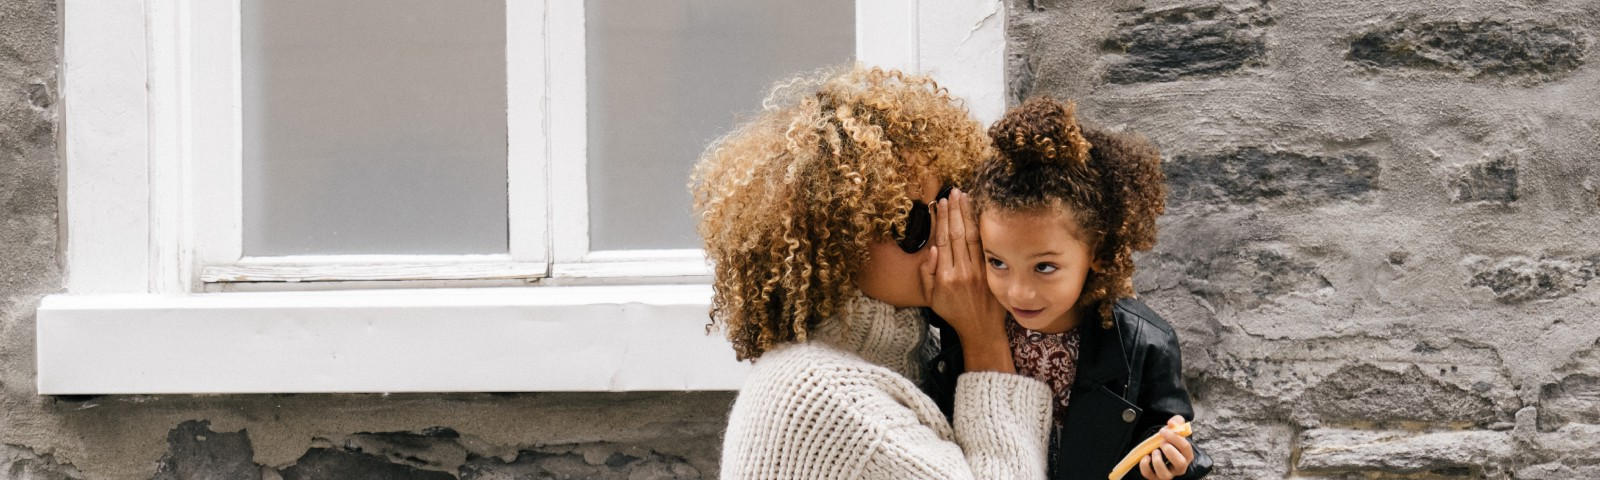 Mother whispering into a child's ear outside a house